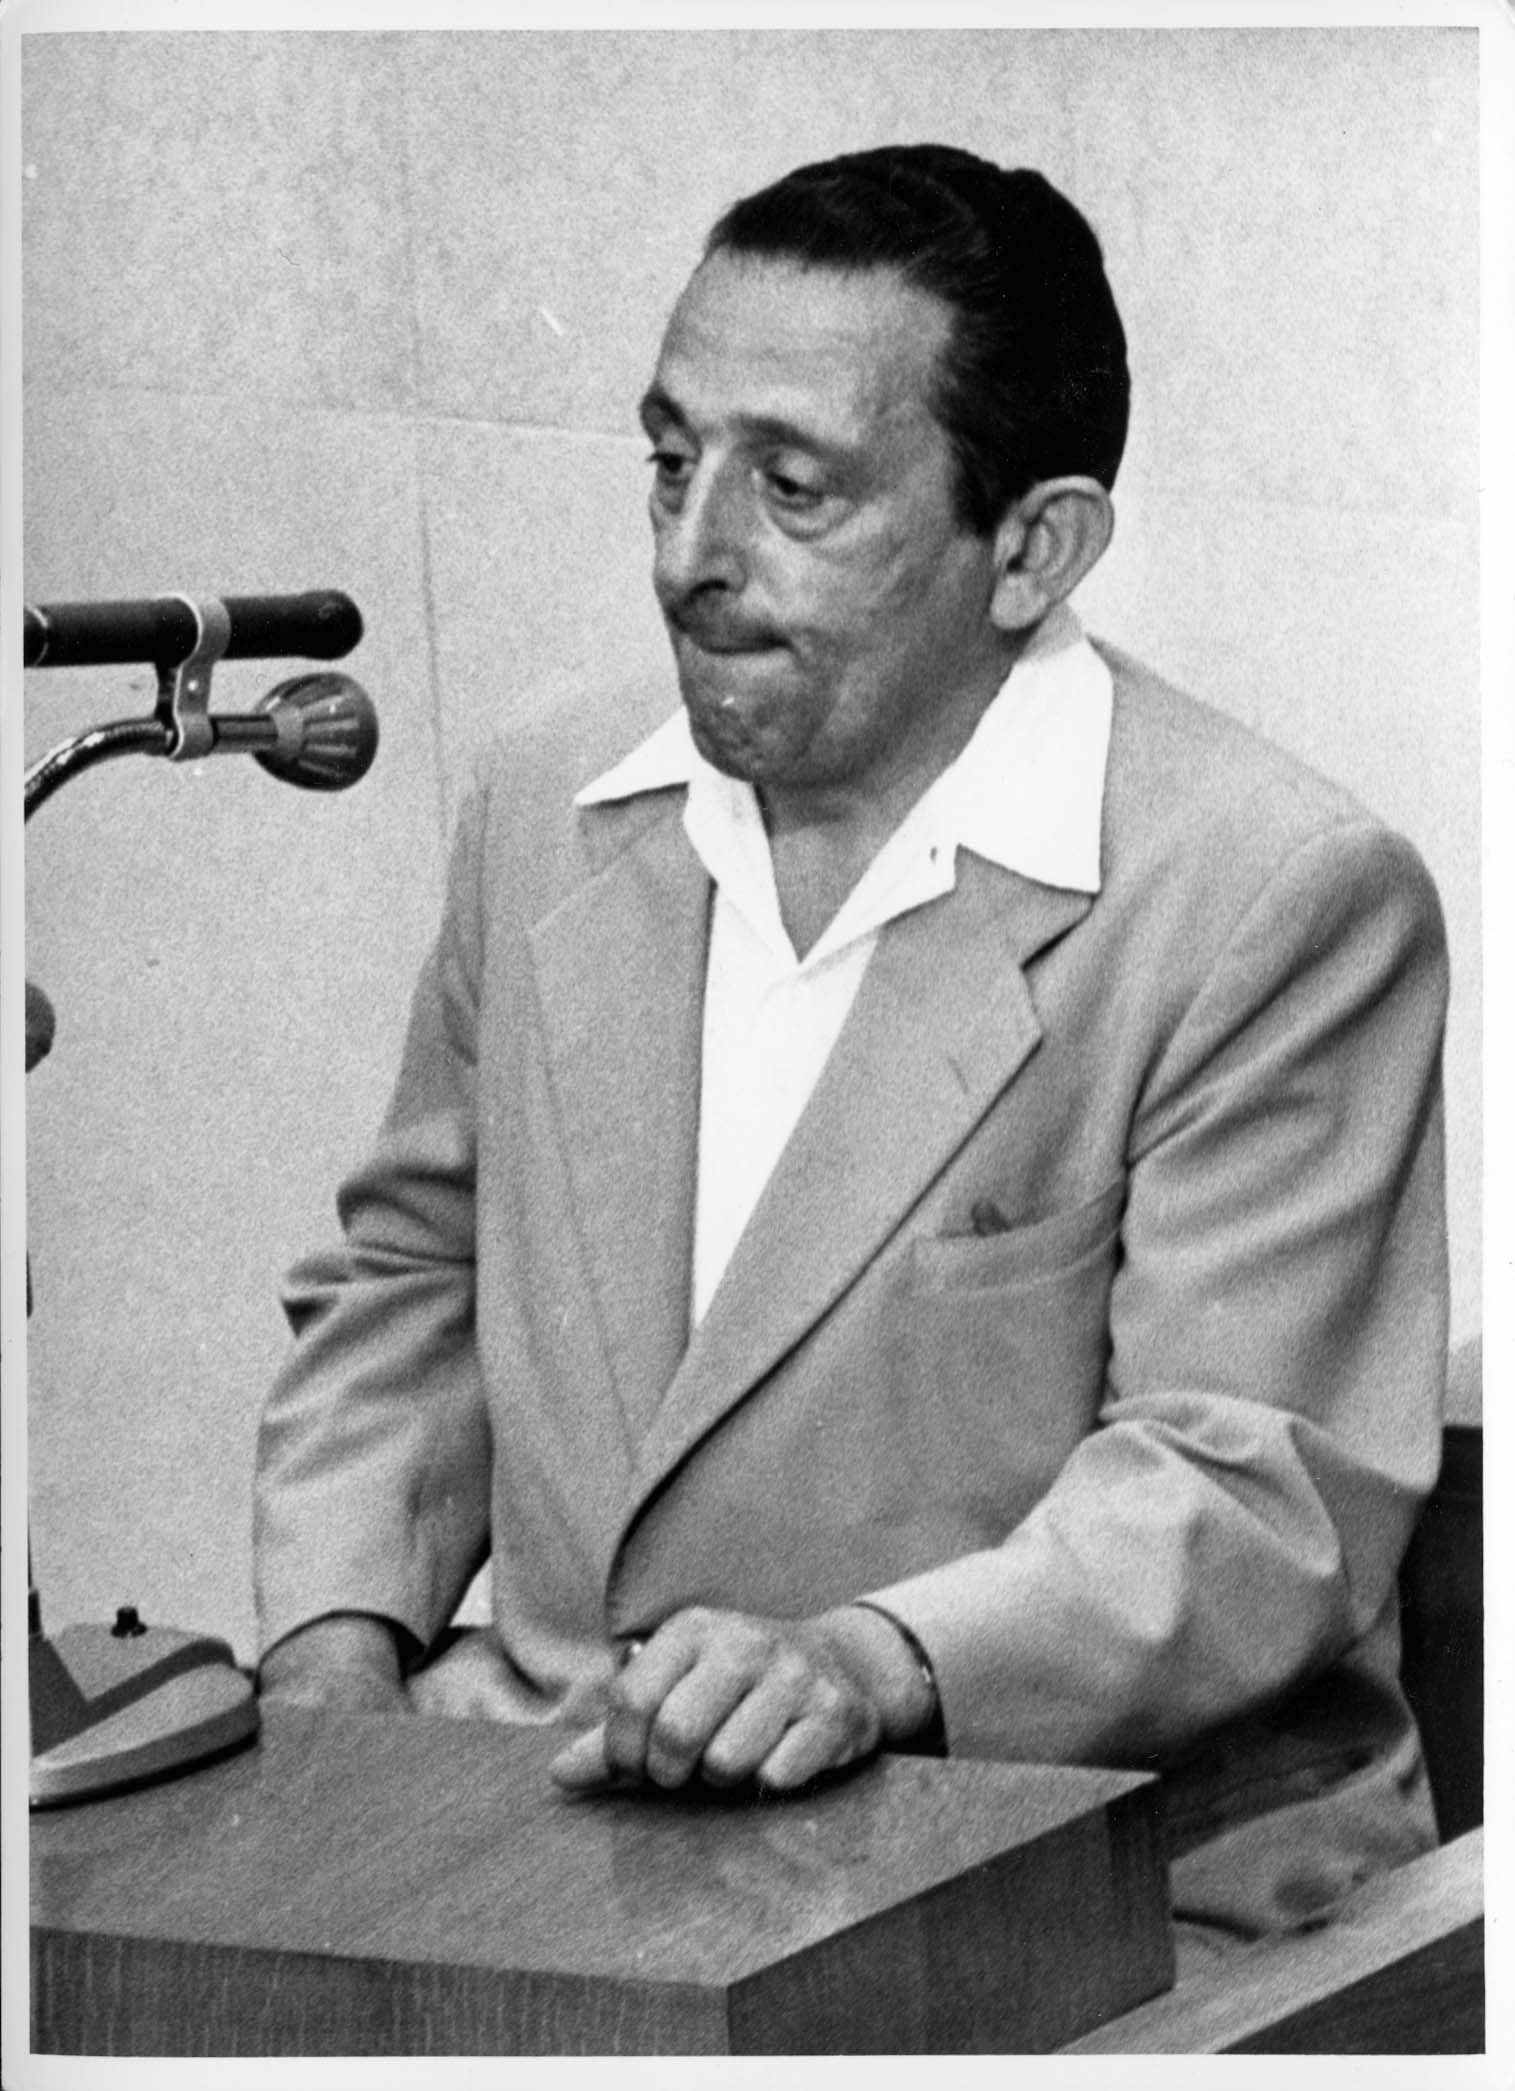 Jerusalem, Israel, a photograph of the witness Henryk Ross giving testimony at the Eichmann trial, 1961